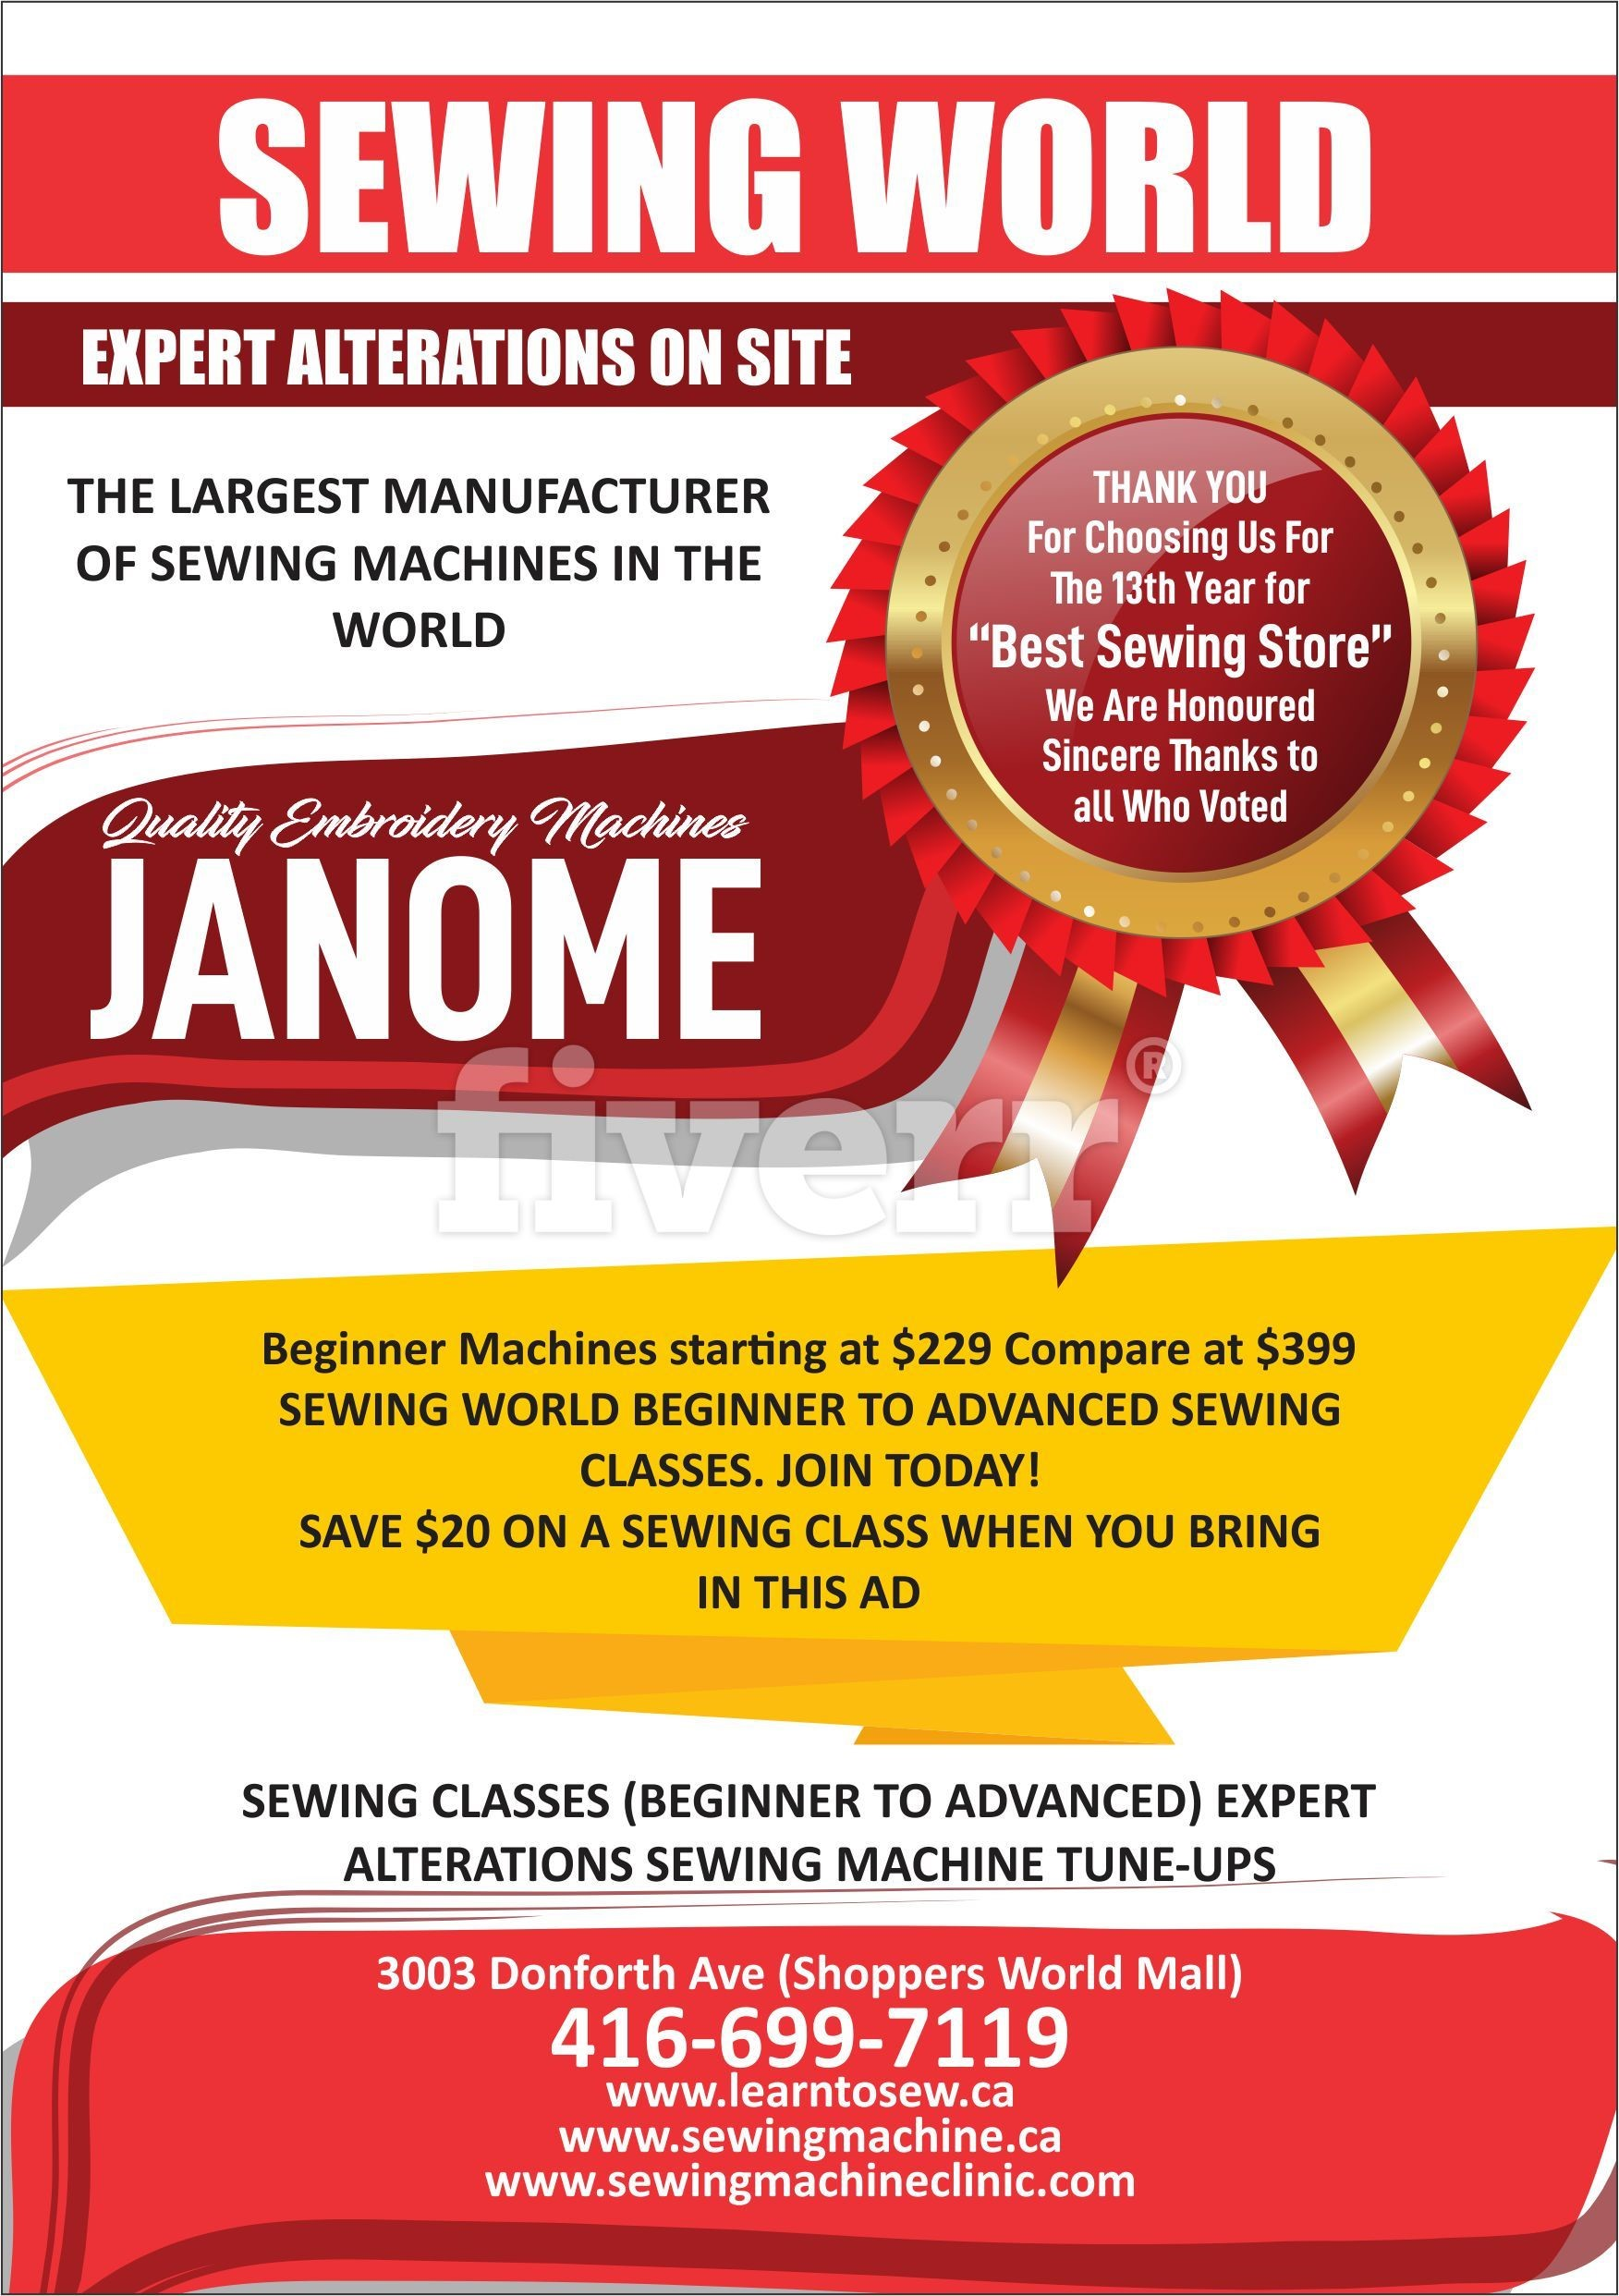 Janome Sewing Machines Toronto | Sewing Centre | Sewing World